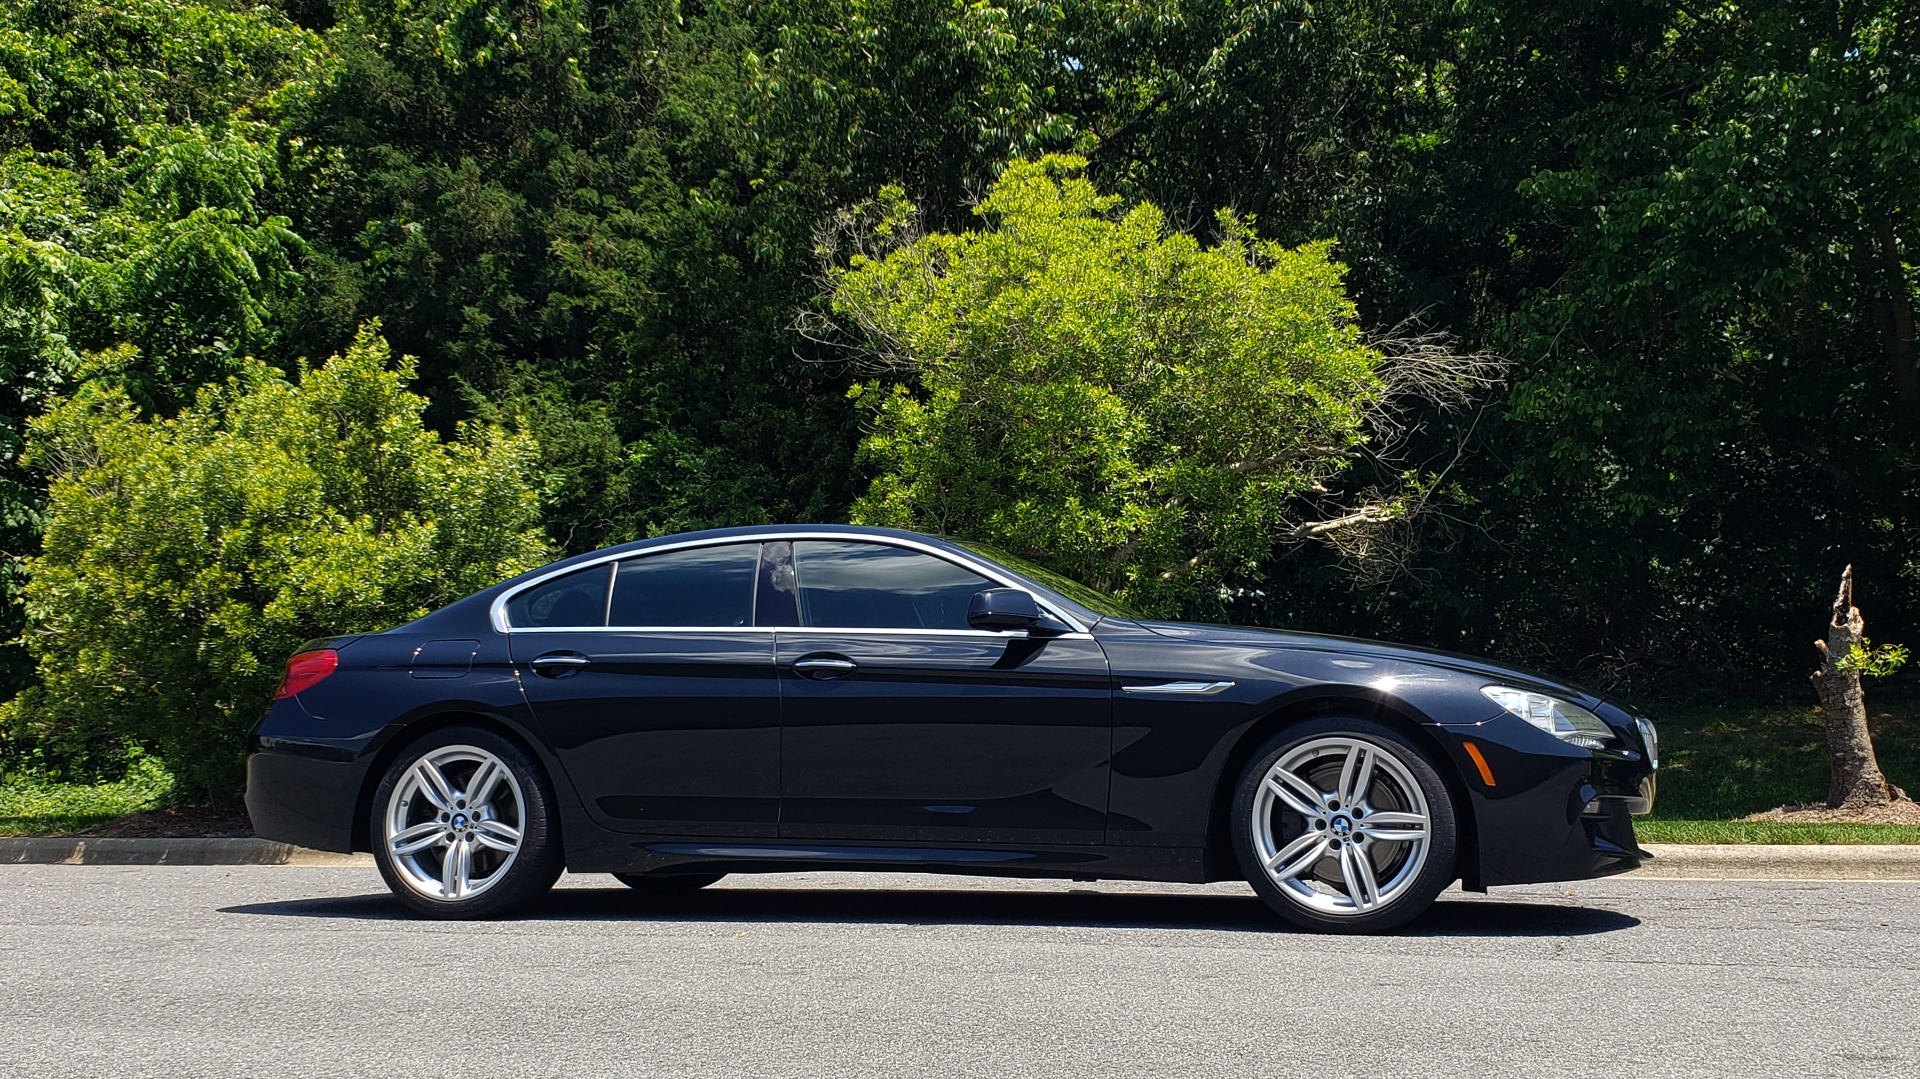 Used 2013 BMW 6 SERIES 650I GRANCOUPE / M-SPORT / LUXURY / NAV / SUNROOF / HTD STS for sale Sold at Formula Imports in Charlotte NC 28227 7